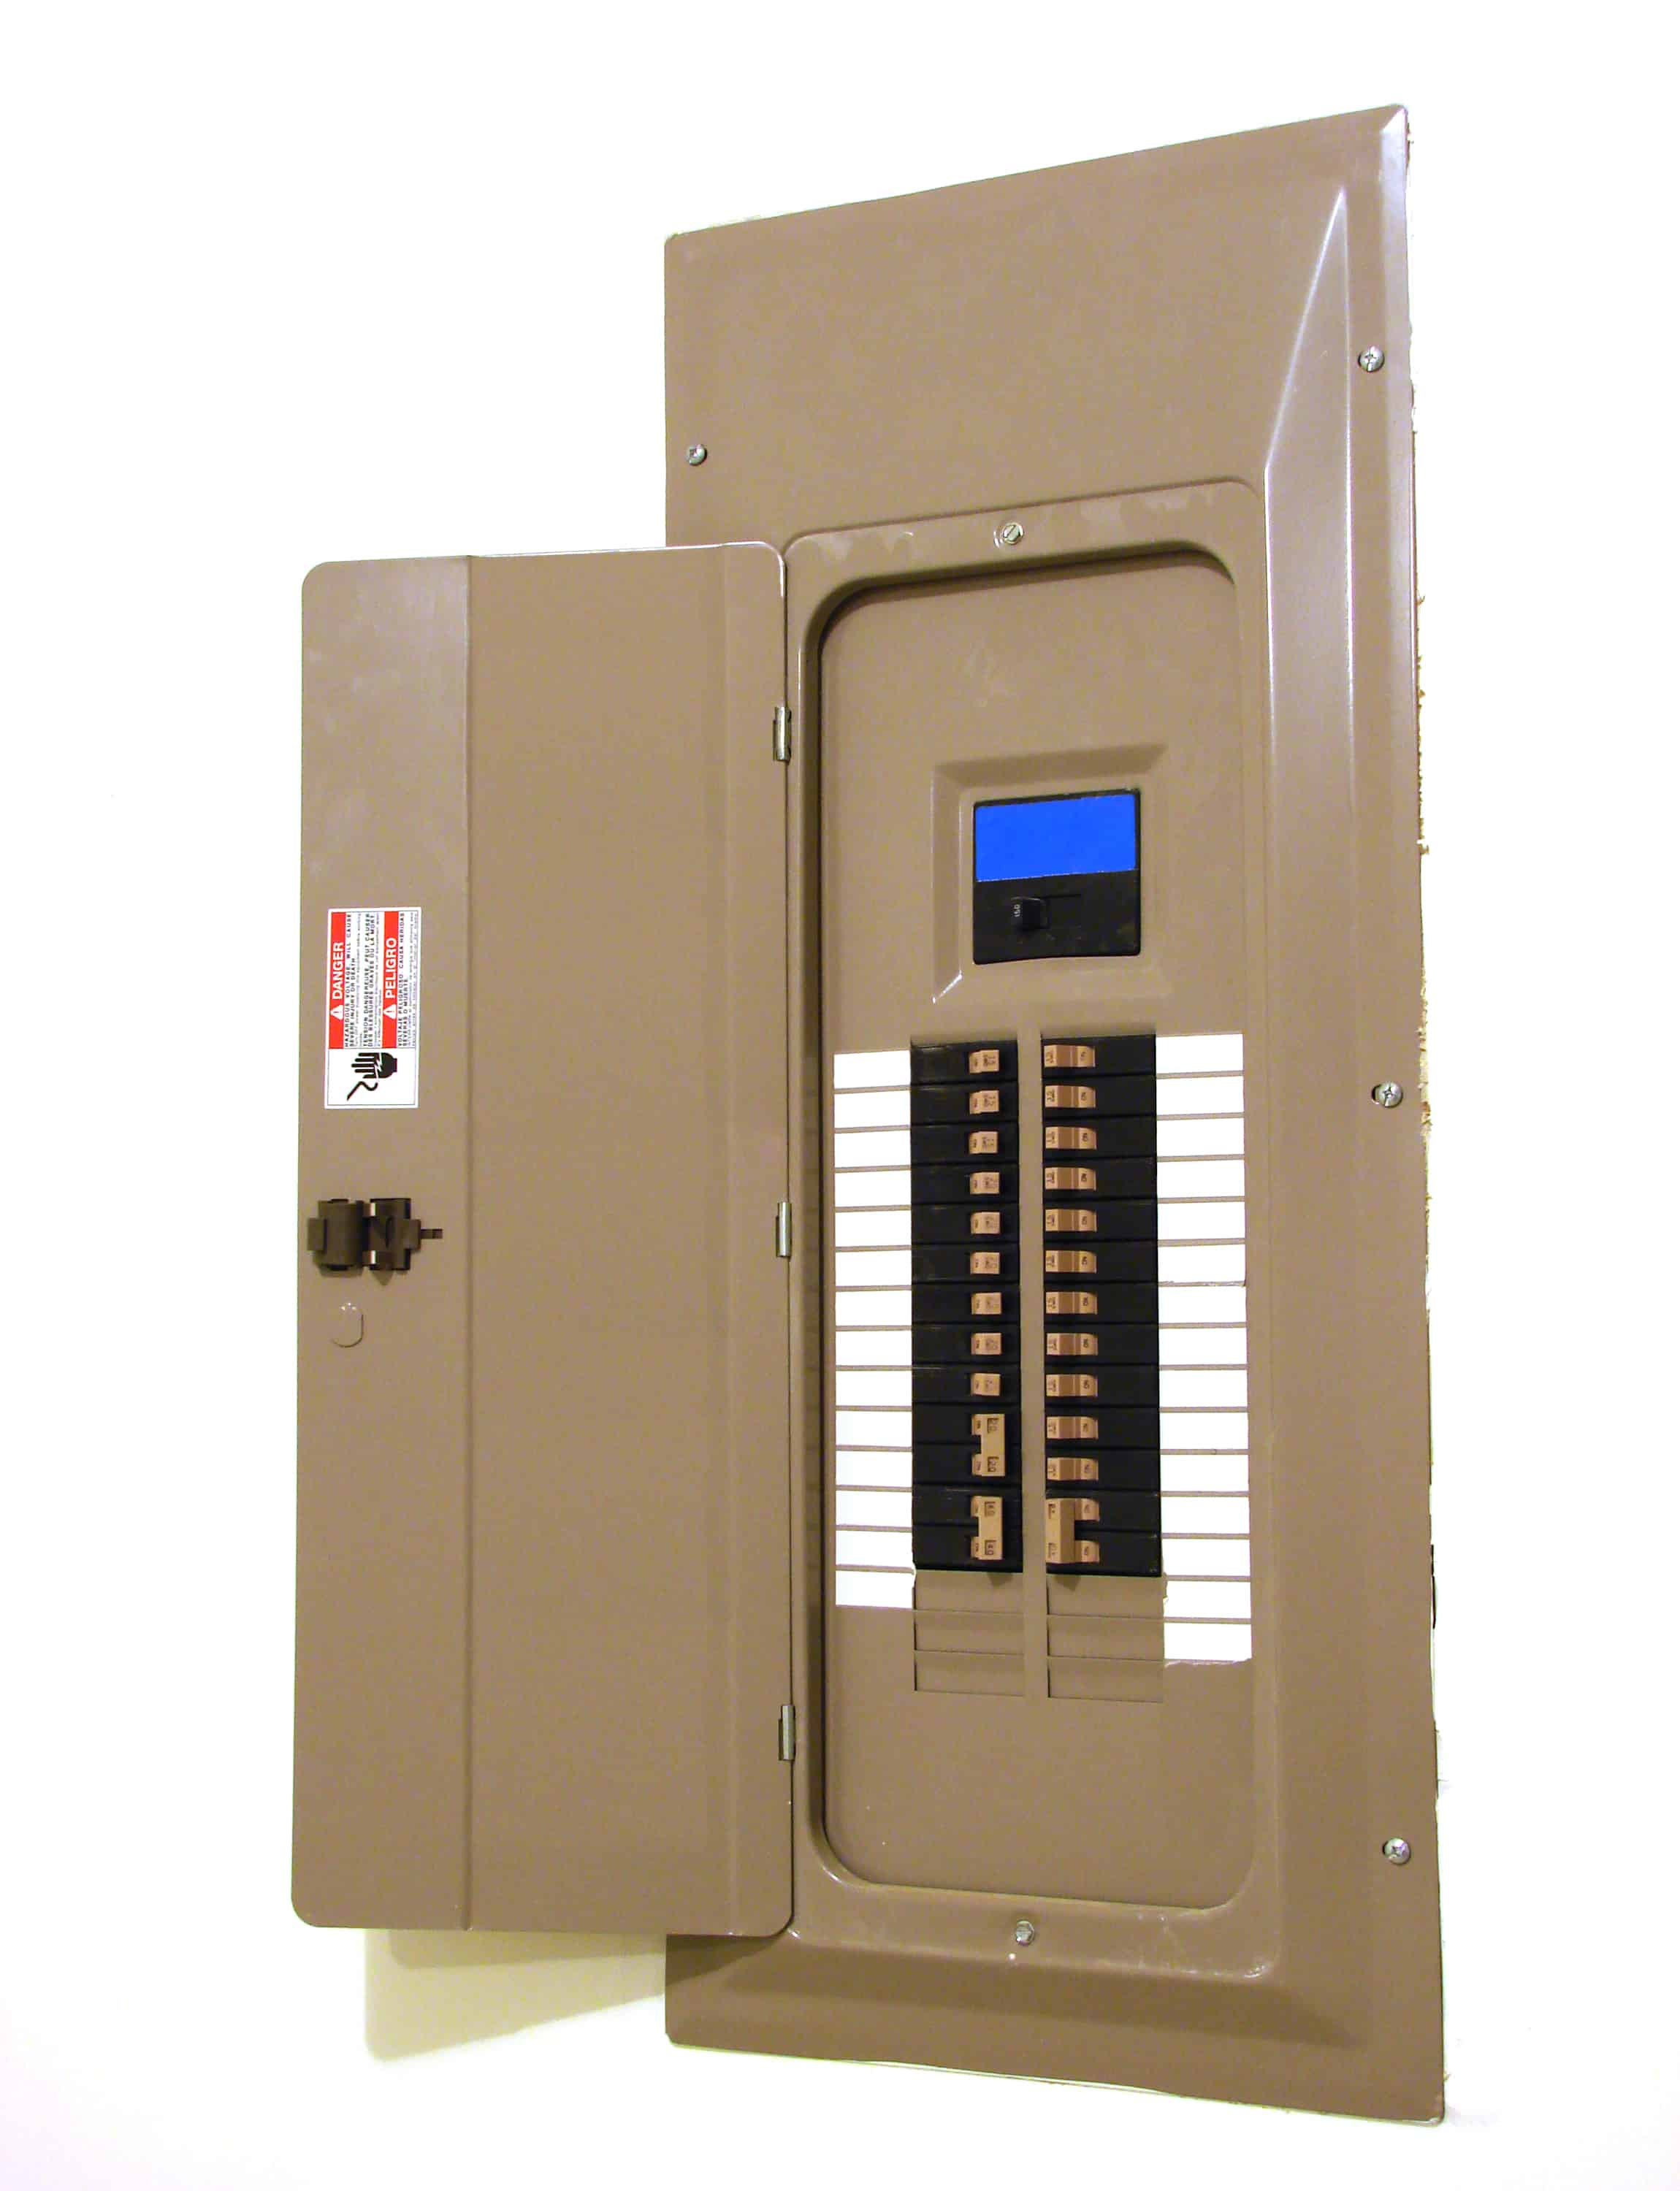 Reasons to Consider Circuit Breaker Replacement | Wave Electric on main circuit breaker panel, 150 amp circuit breaker panel, electrical circuit breaker panel, home circuit breaker panel,